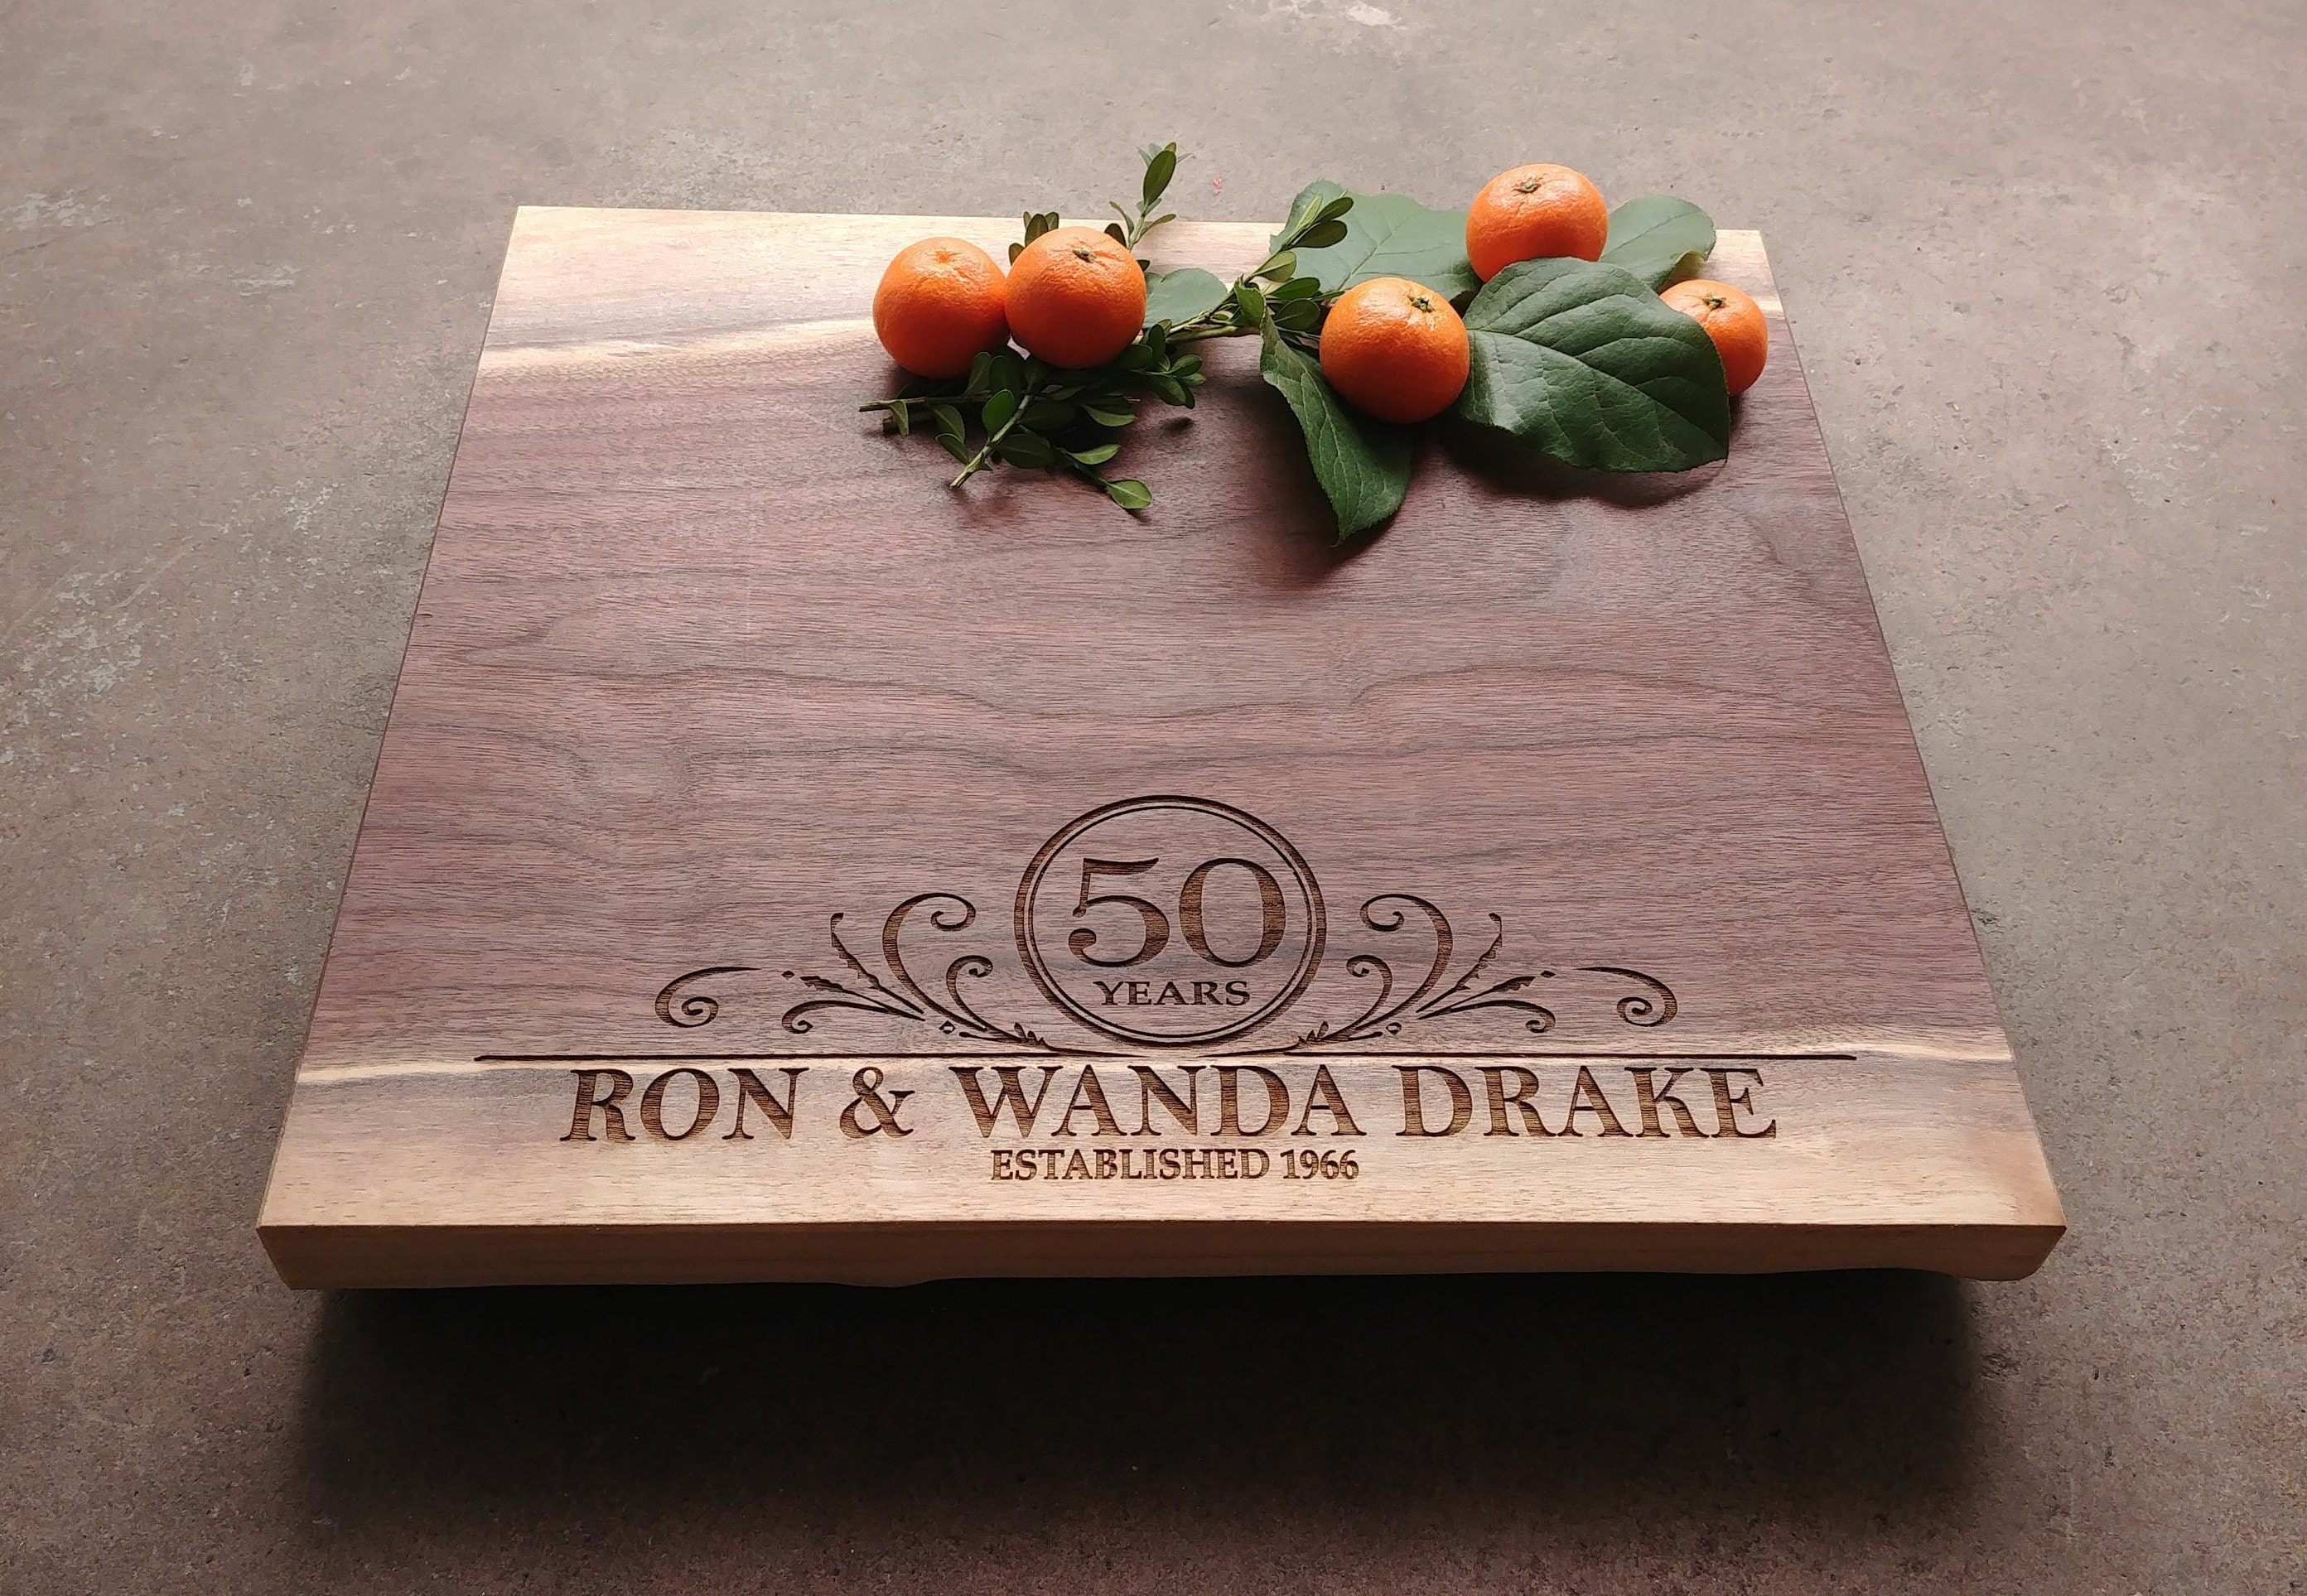 50th Wedding Anniversay Gifts: 50th Wedding Anniversary Gift Personalized Cutting Board